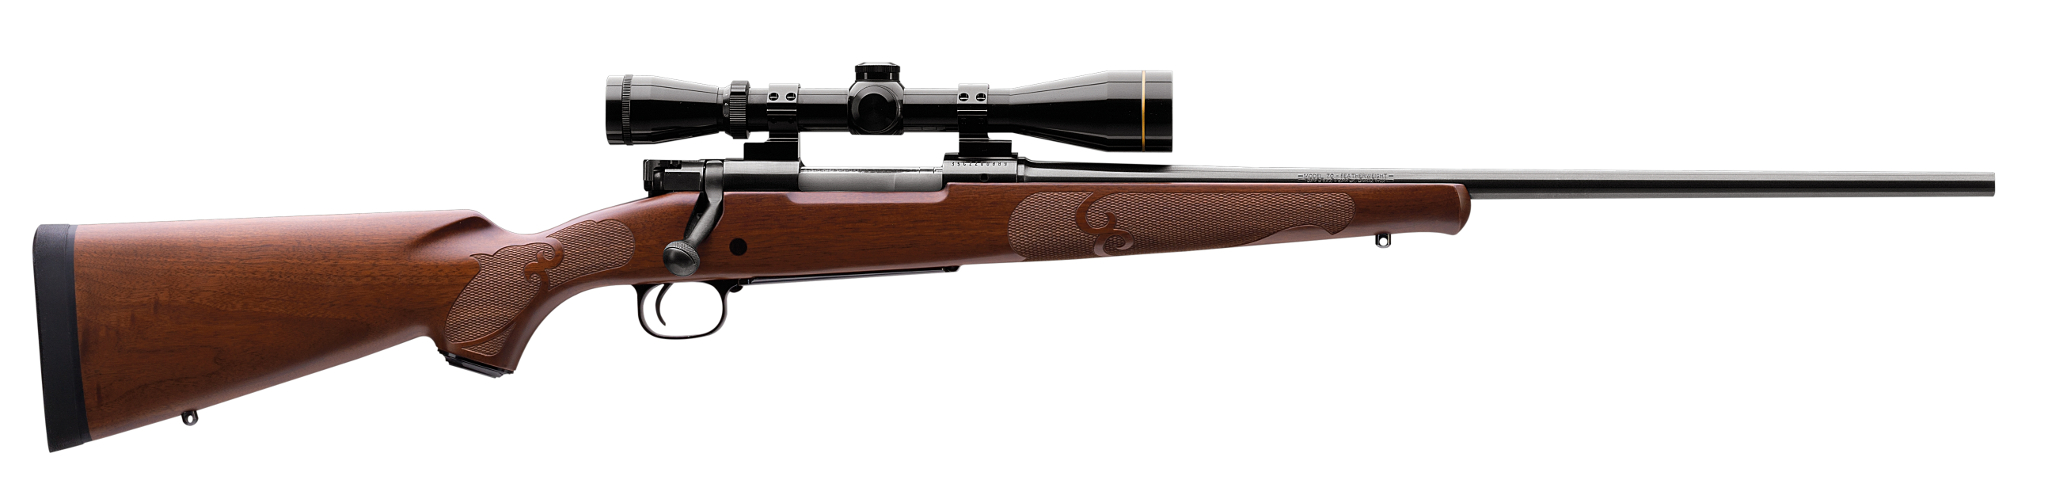 Winchester Model 70 Featherweight rifle